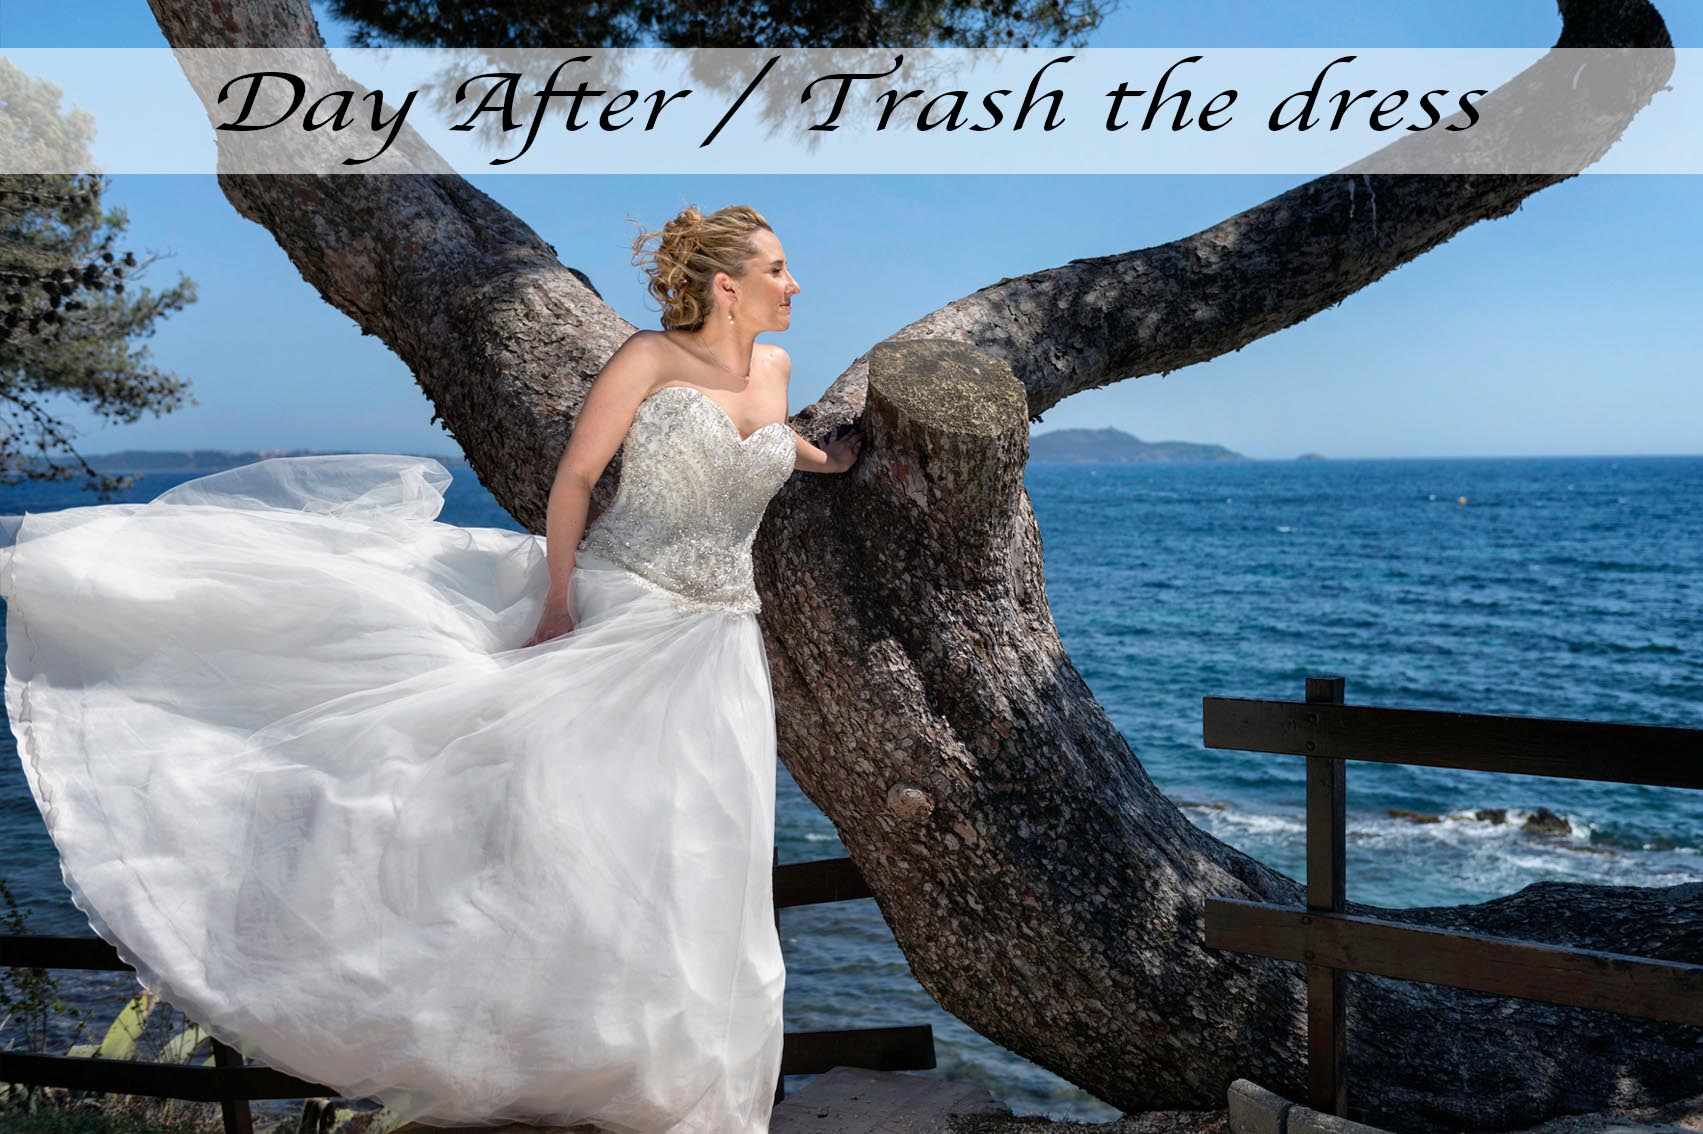 Day after - trash the dress